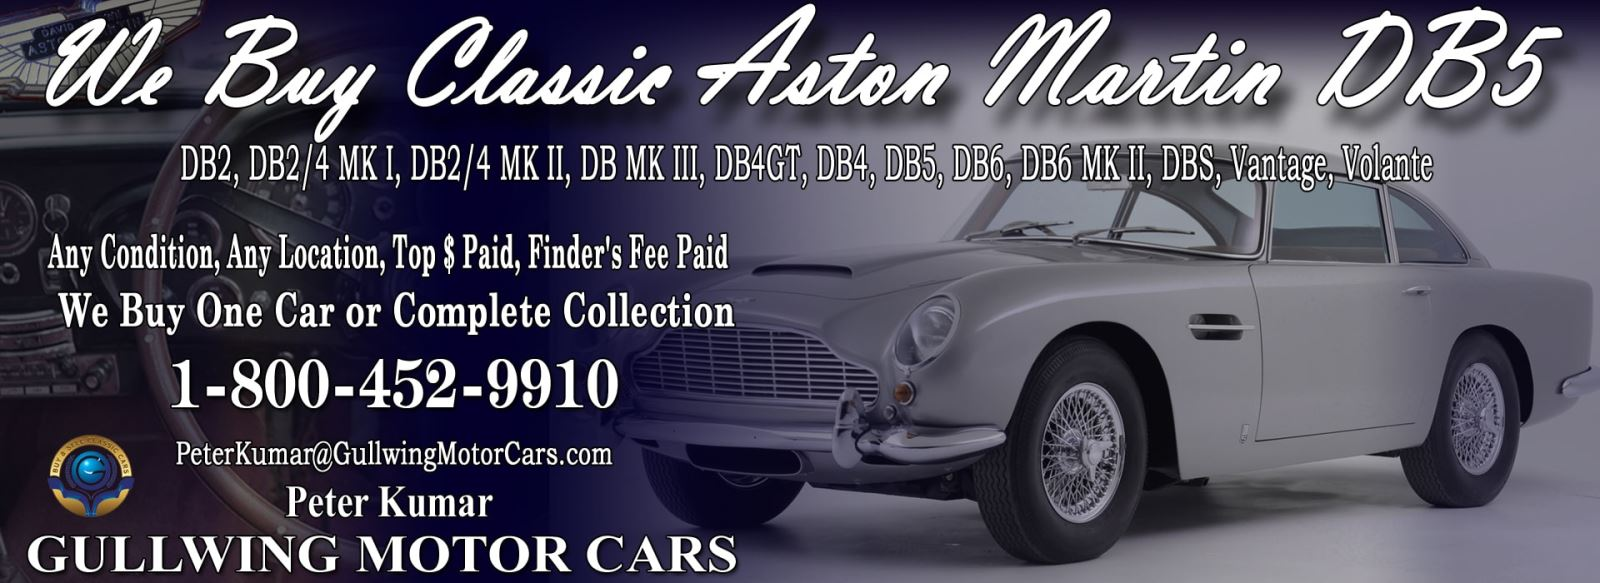 Classic Aston Martin DB5 for sale, we buy vintage Aston Martin DB5. Call Peter Kumar. Gullwing Motor